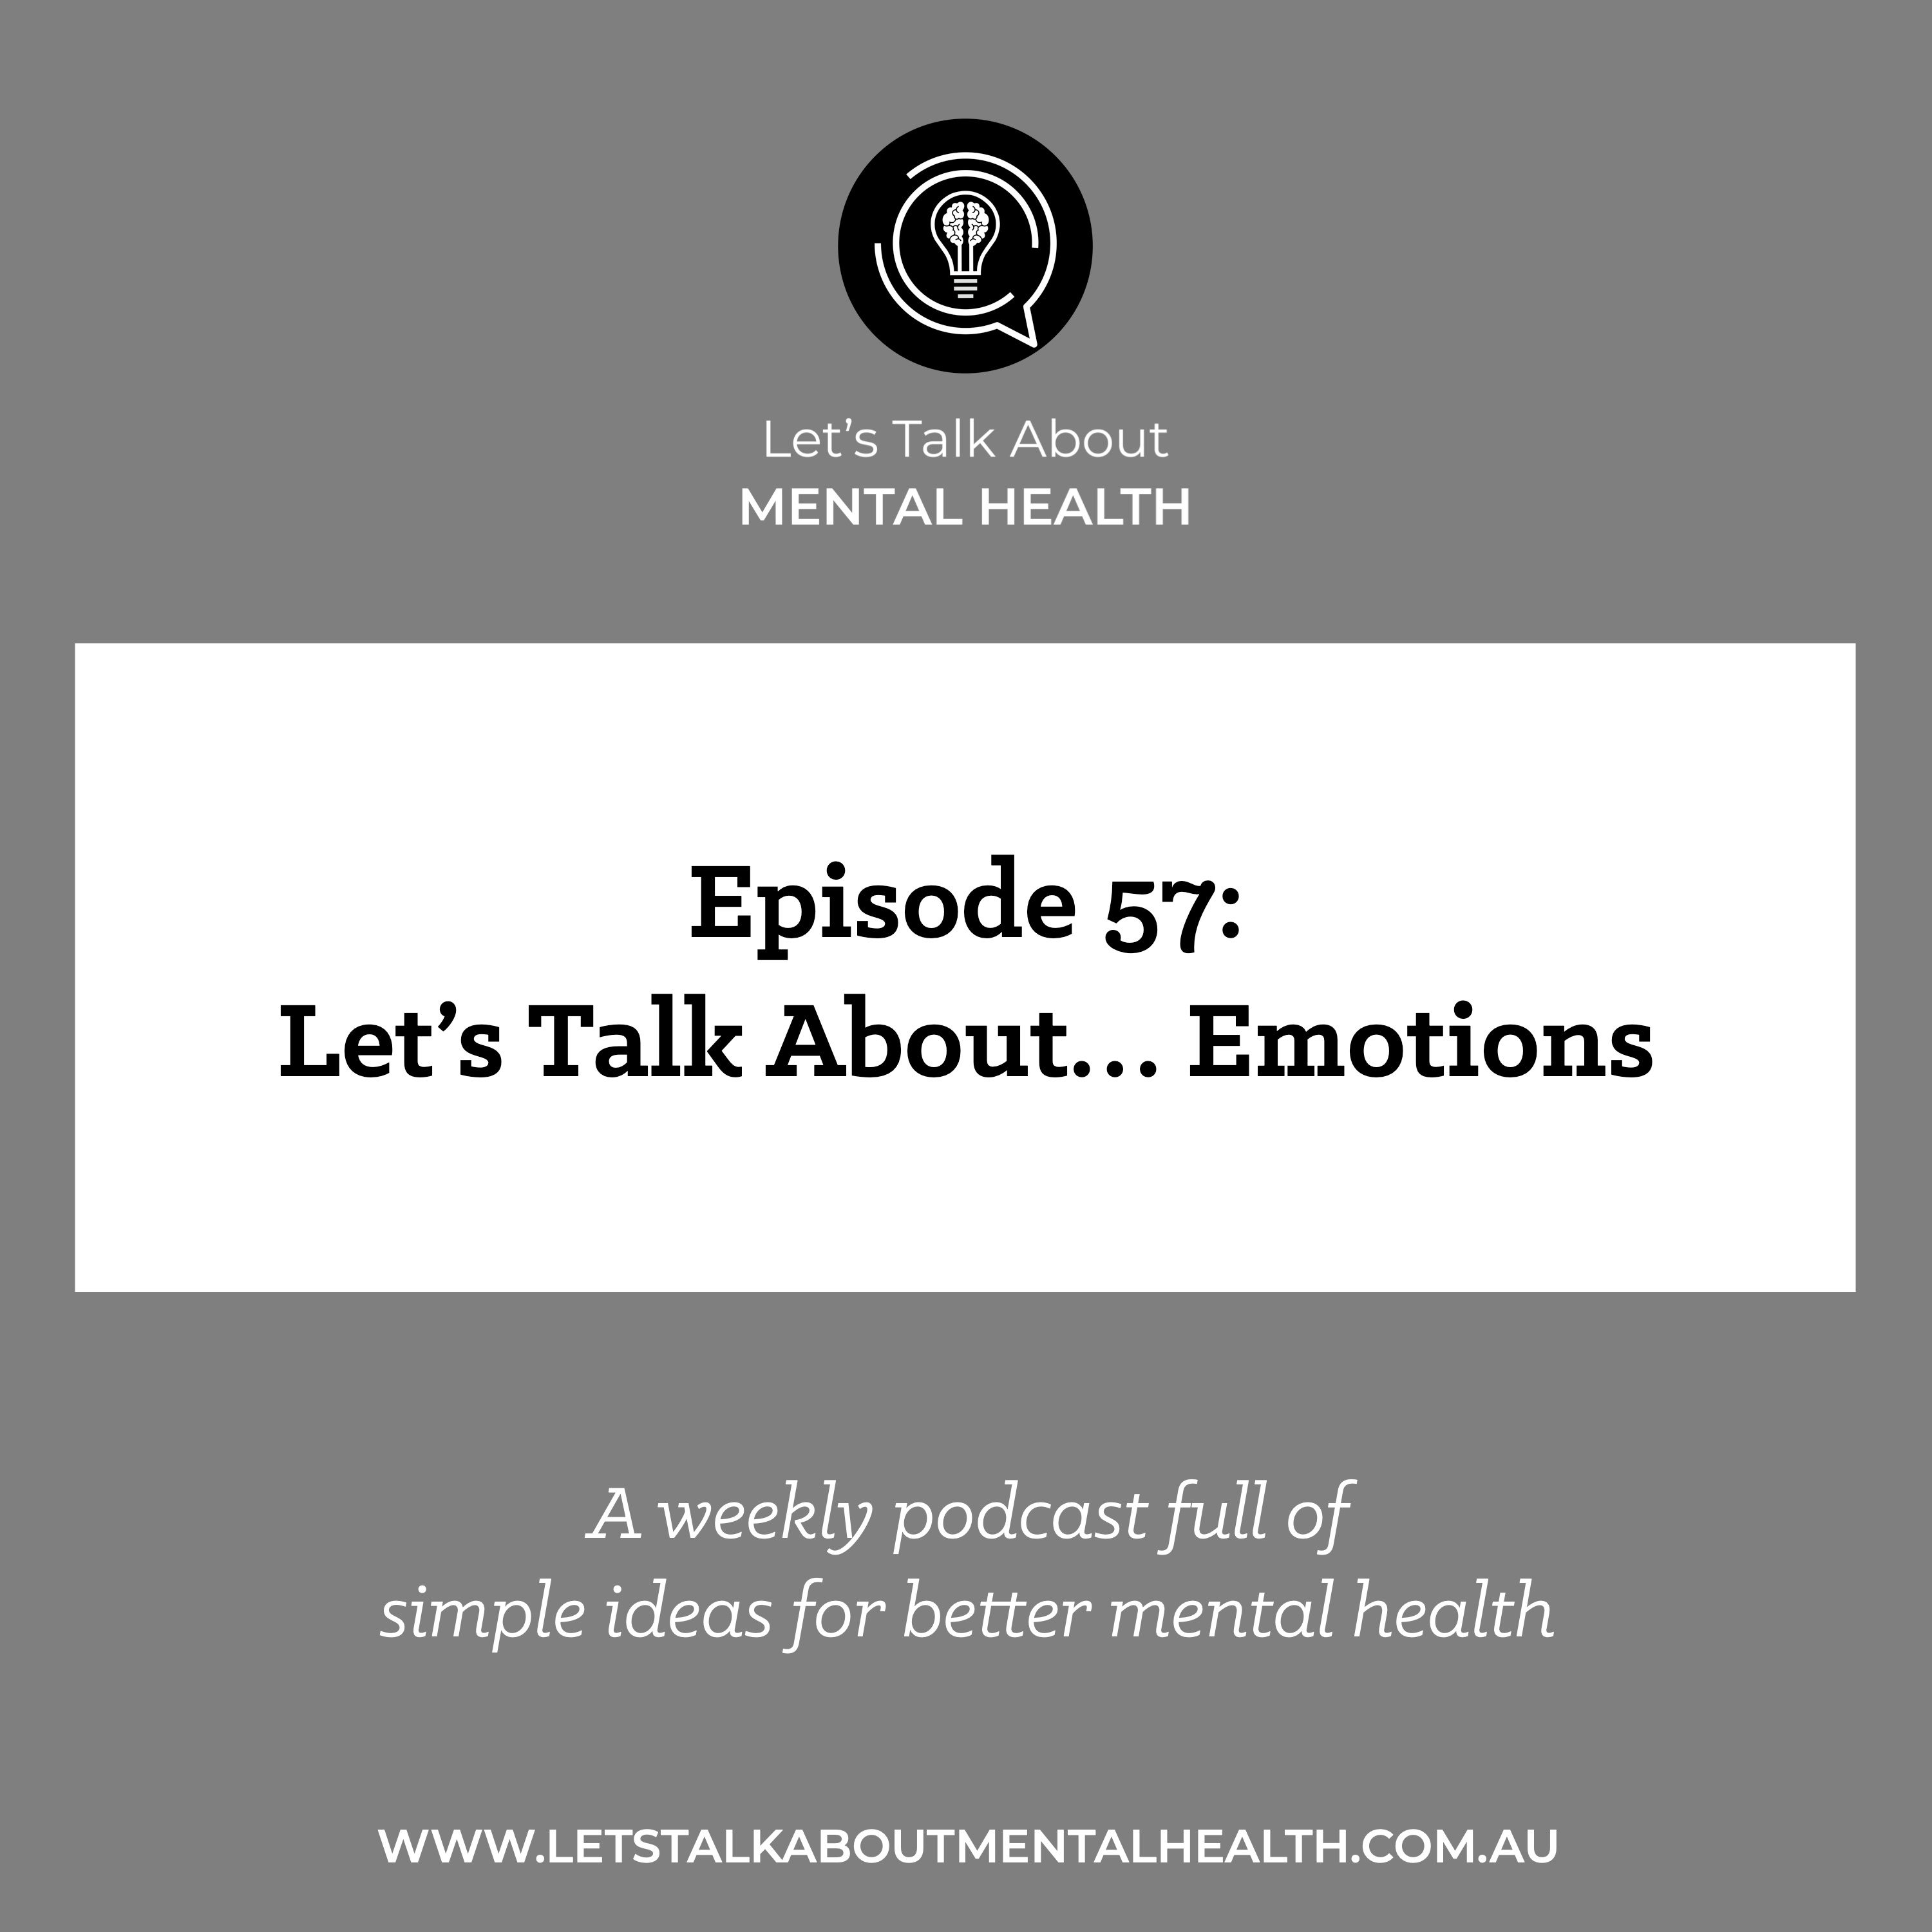 Let's Talk About Mental Health - Let's Talk About... Emotions